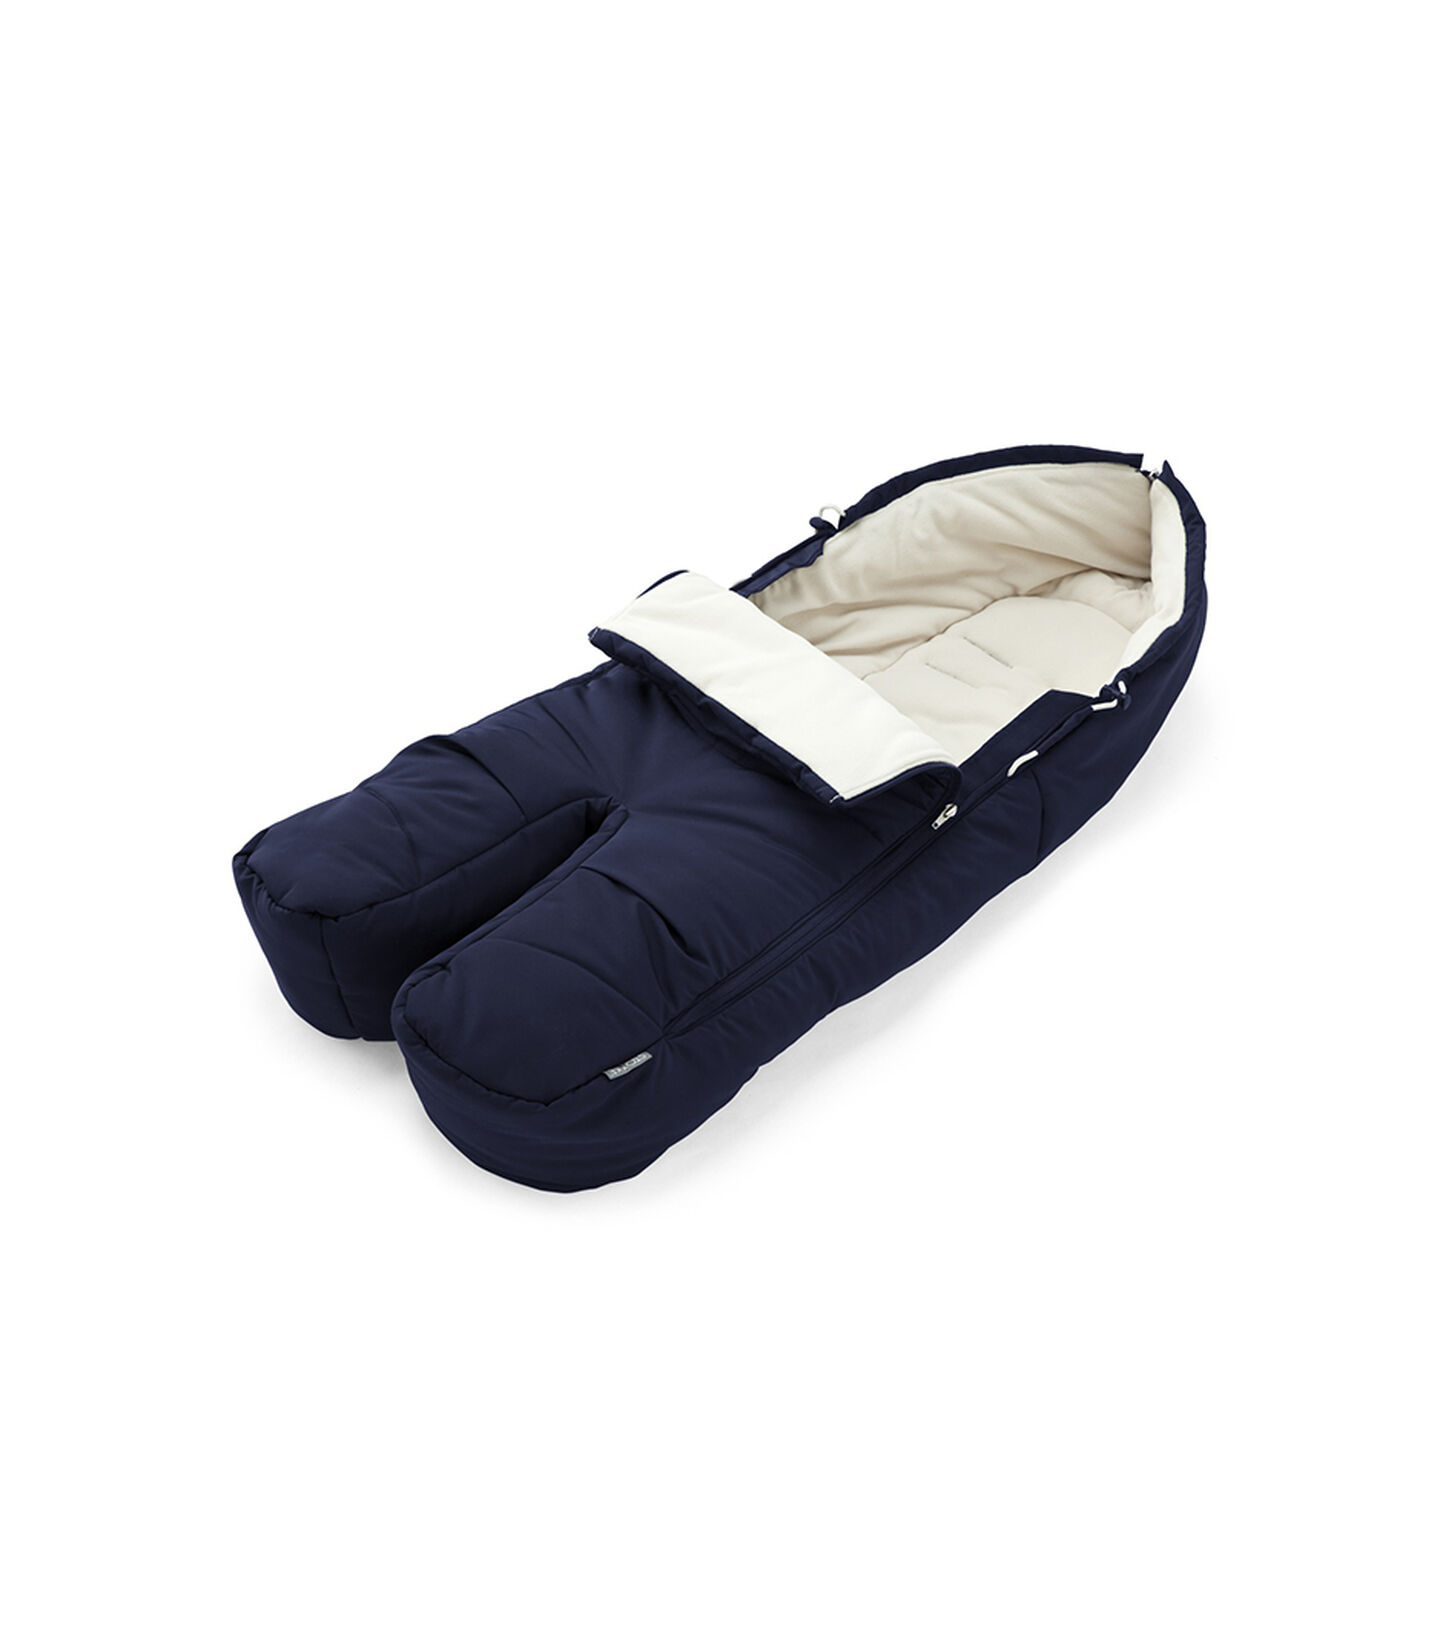 Stokke® Foot Muff Deep Blue, Deep Blue, mainview view 2